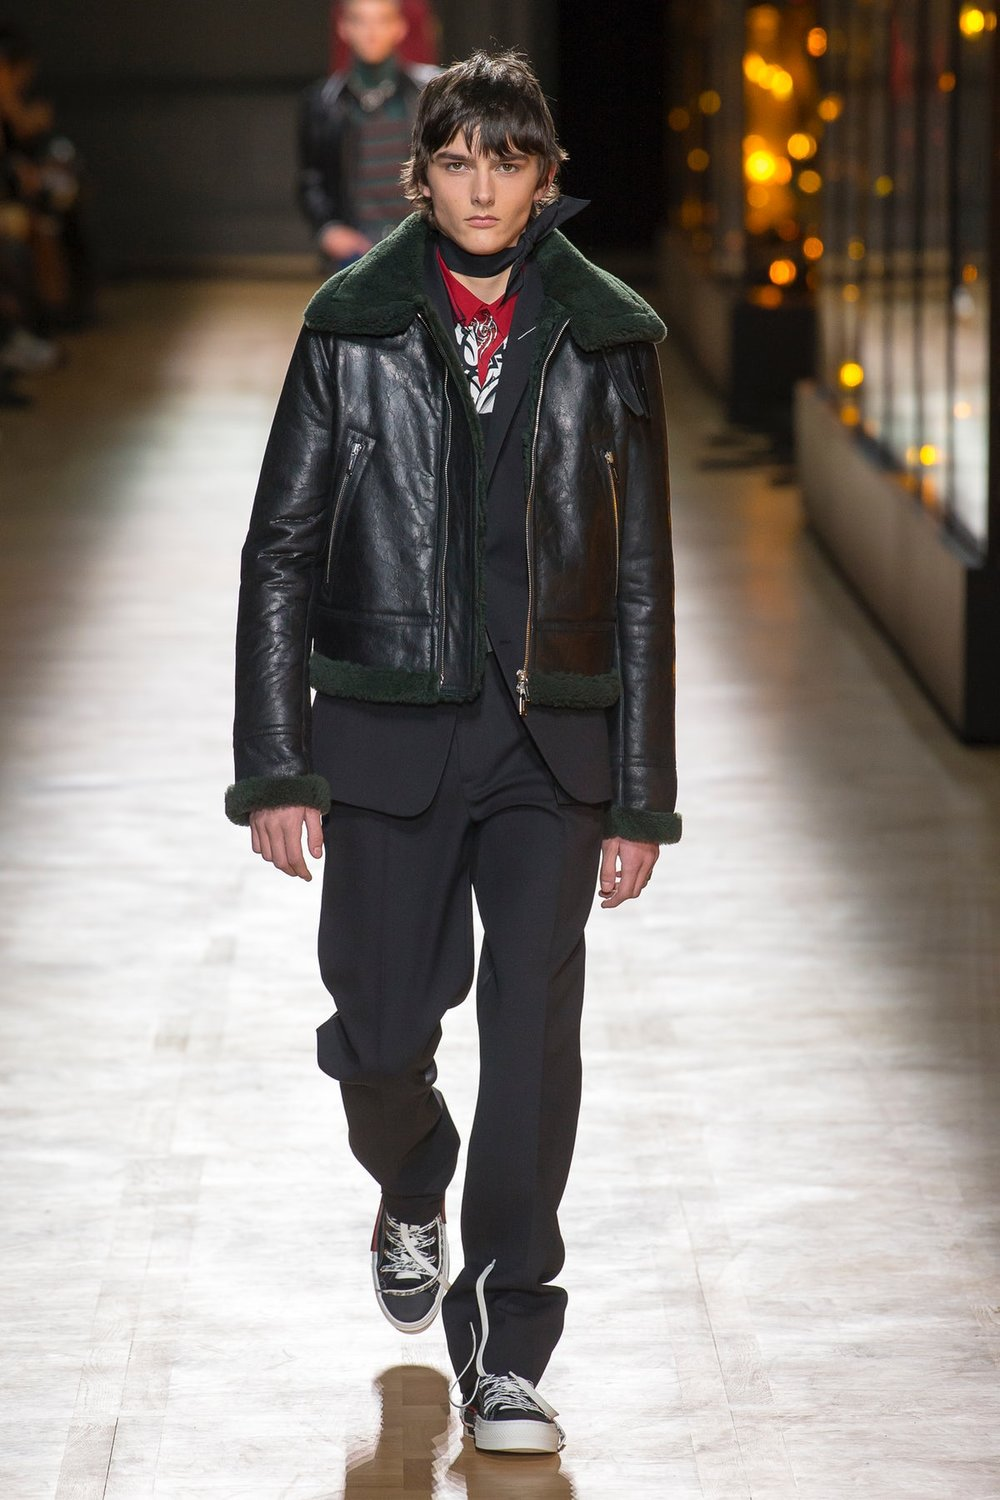 dior_homme_look_16_menswear_autumn_2018.jpeg